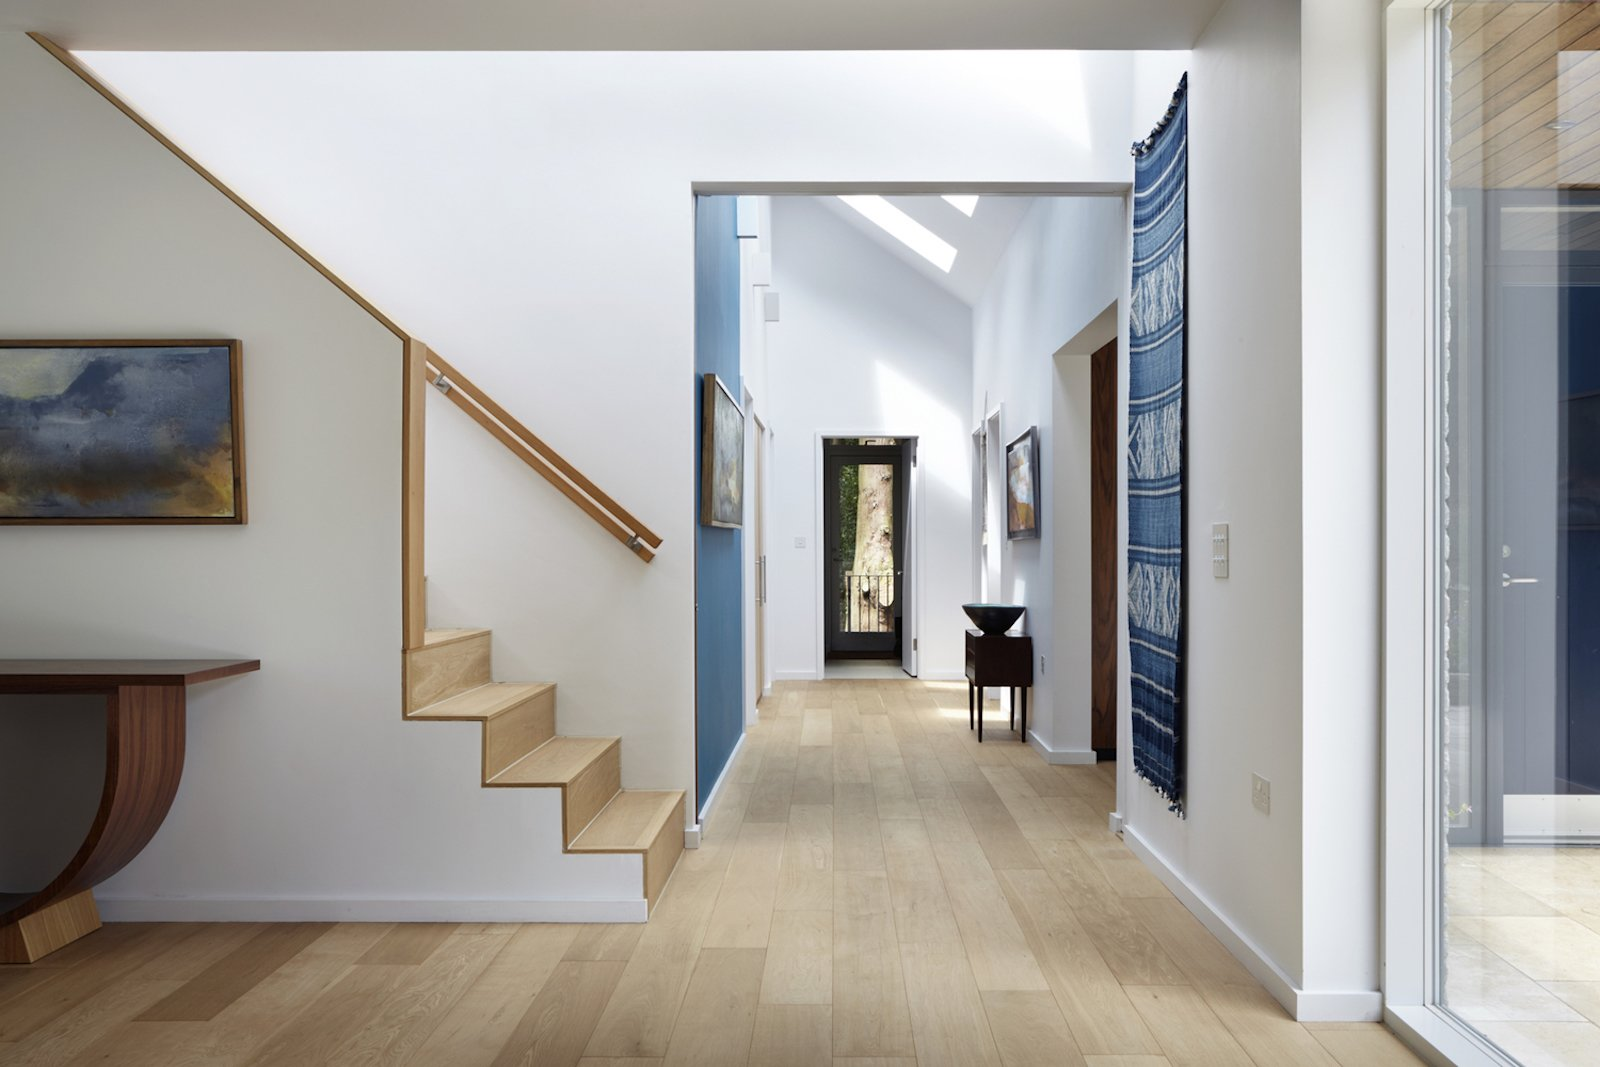 Hallway and Light Hardwood Floor  Photo 8 of 10 in Raised in Just 10 Days, This Airtight Prefab Is a Lesson in Efficiency